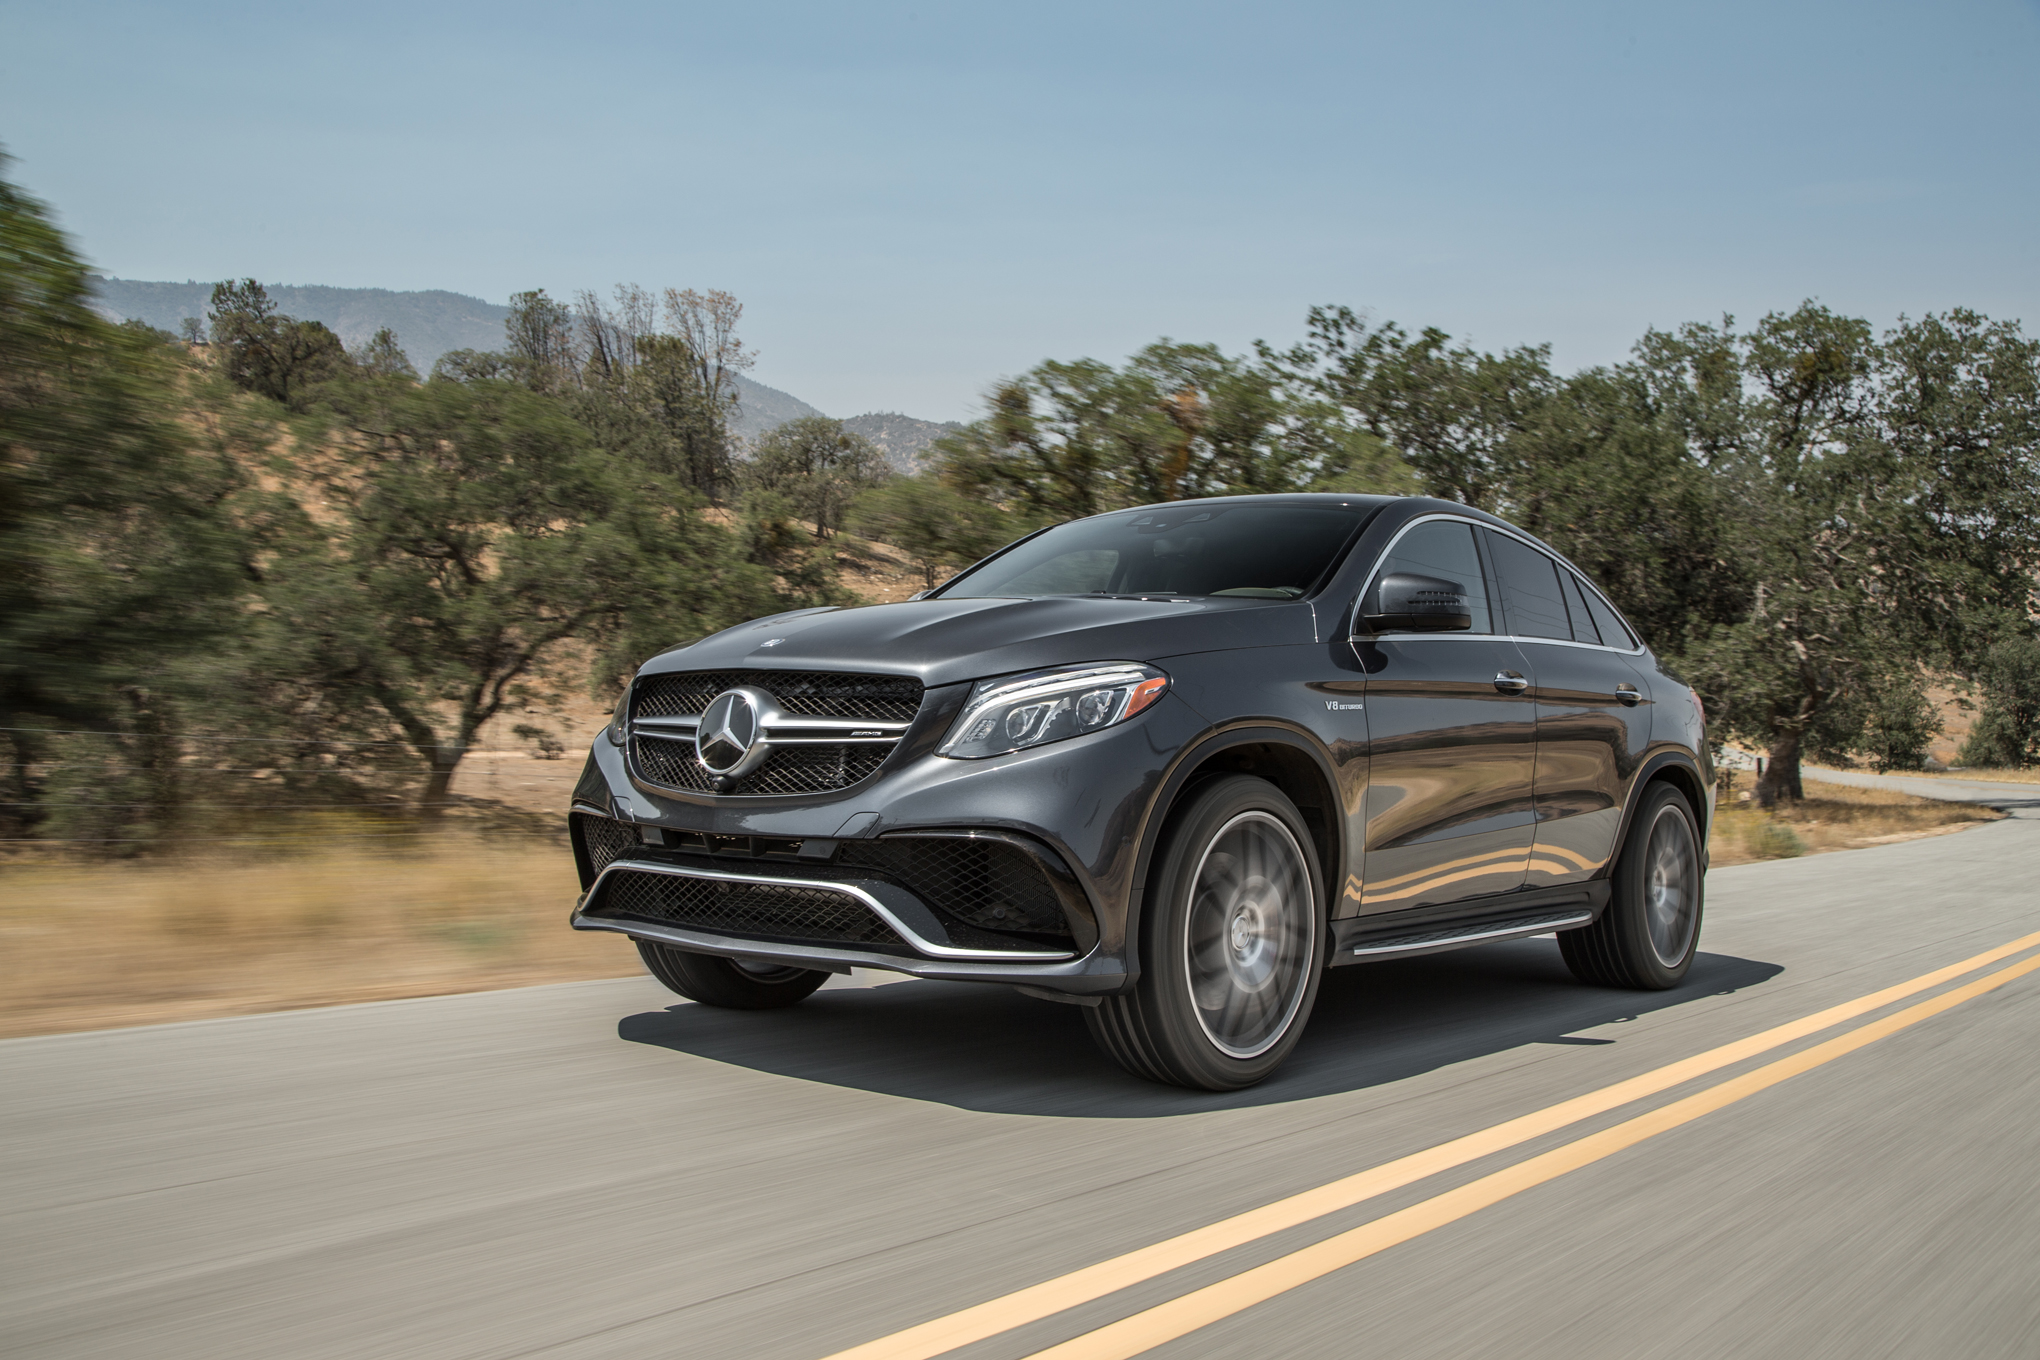 https://enthusiastnetwork.s3.amazonaws.com/uploads/sites/5/2015/09/2016-Mercedes-Benz-GLE63-S-AMG-Coupe-front-three-quarters-in-motion.jpg